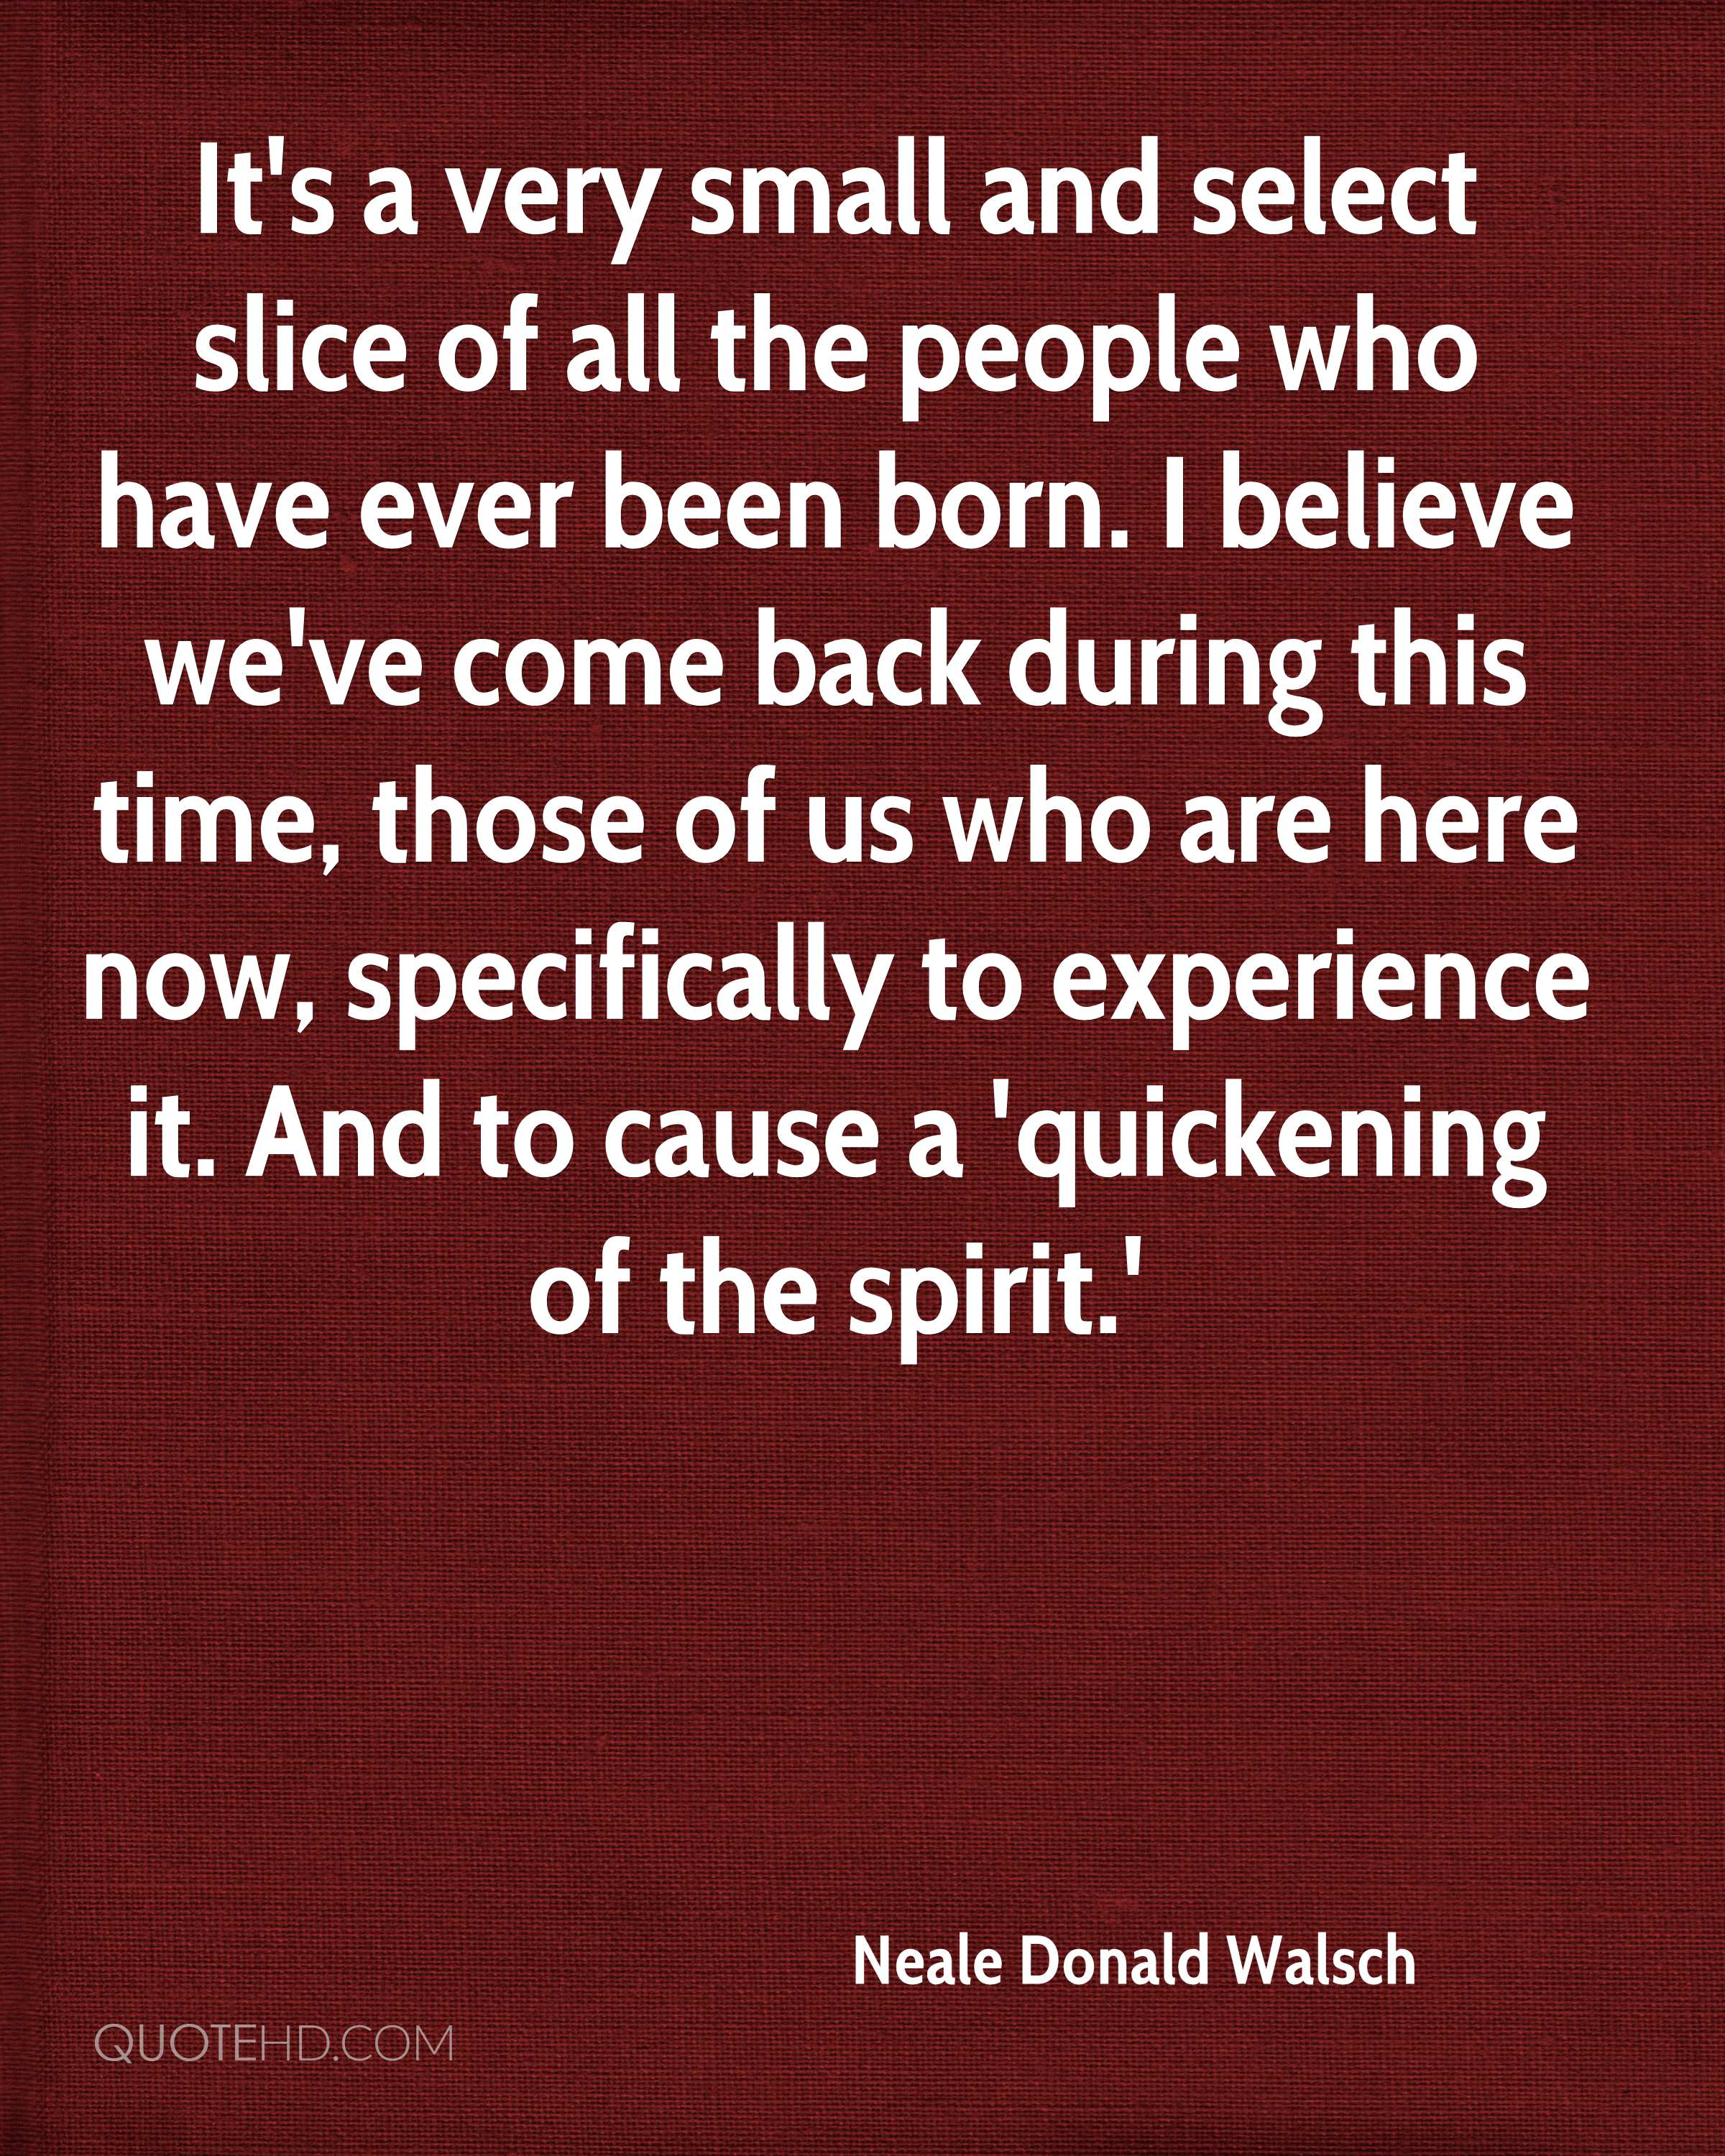 It's a very small and select slice of all the people who have ever been born. I believe we've come back during this time, those of us who are here now, specifically to experience it. And to cause a 'quickening of the spirit.'